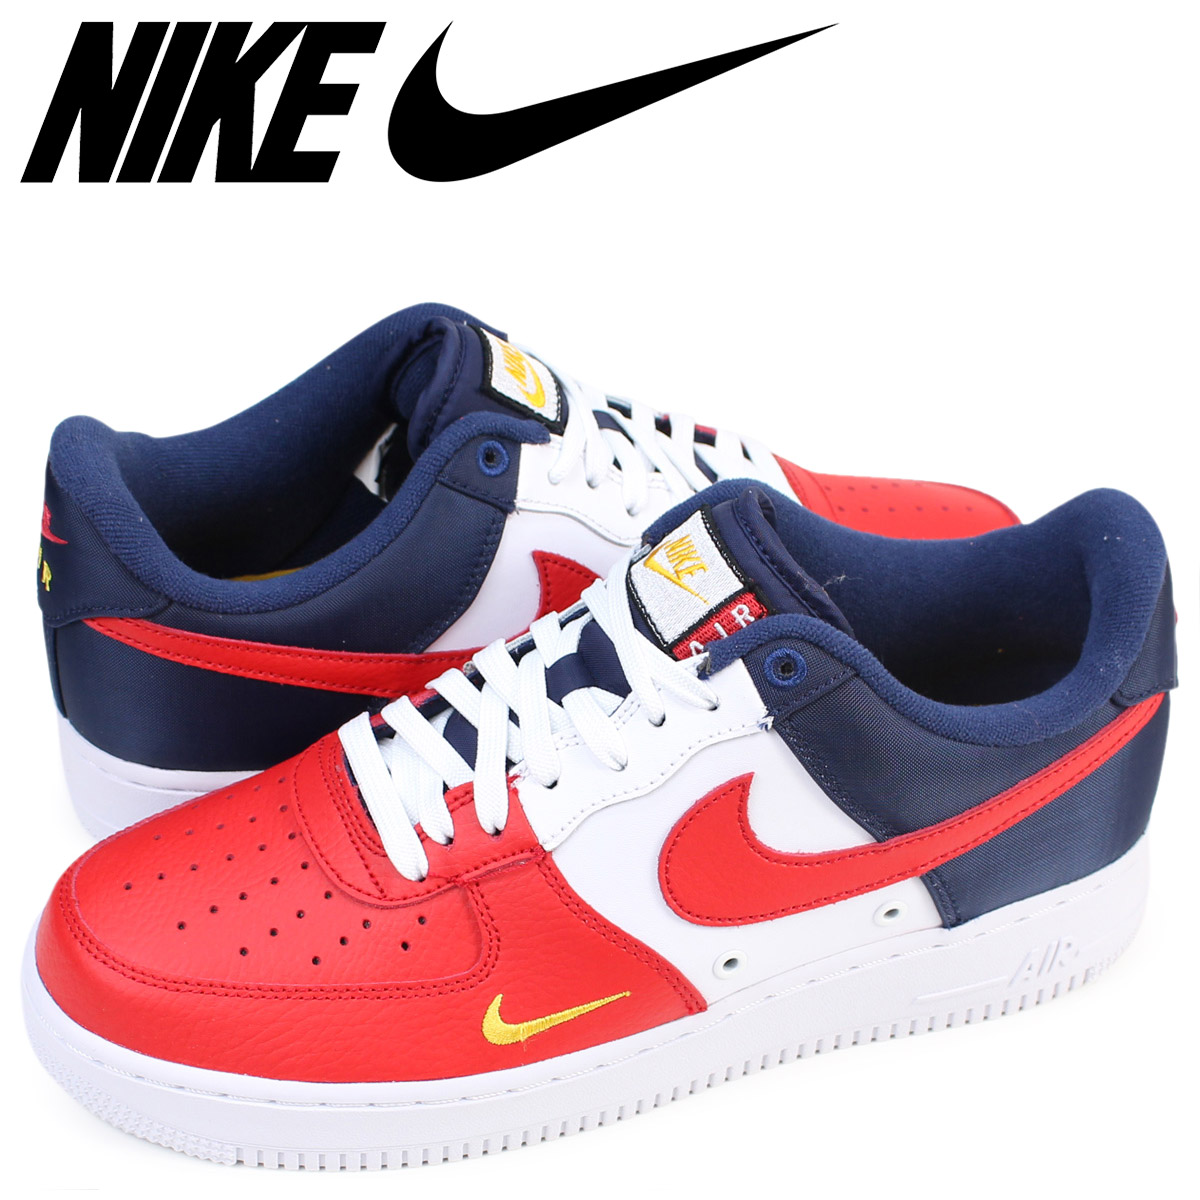 NIKE Nike air force 1 sneakers AIR FORCE 1 LOW 07 LV8 men low 823,511,601  shoes tricolor [176]